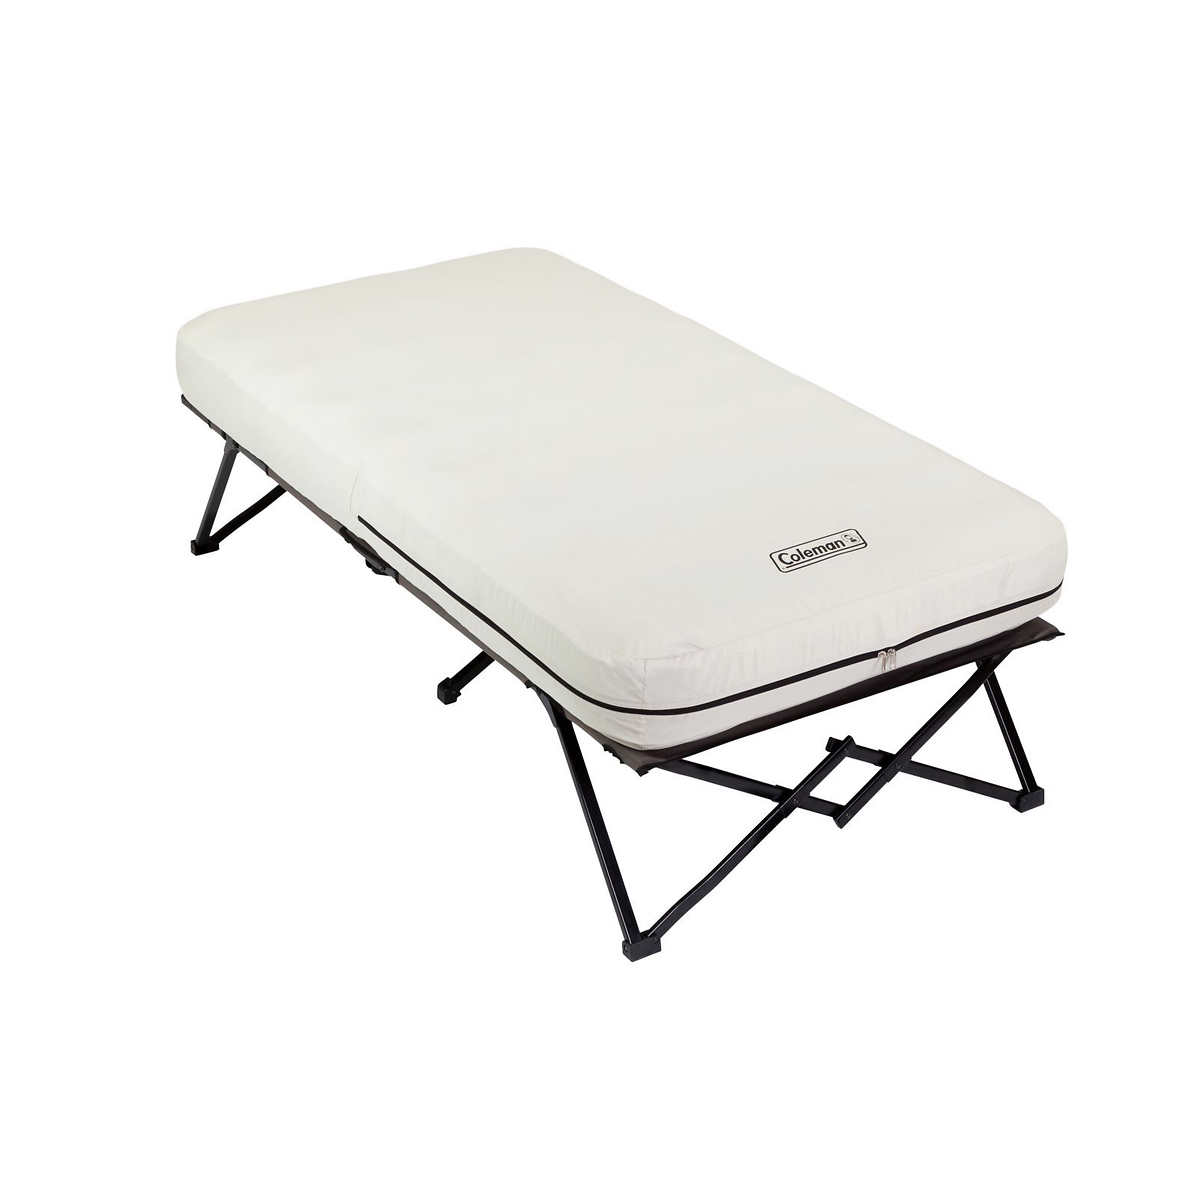 Camping bed costco - Coleman Twin Airbed Cot